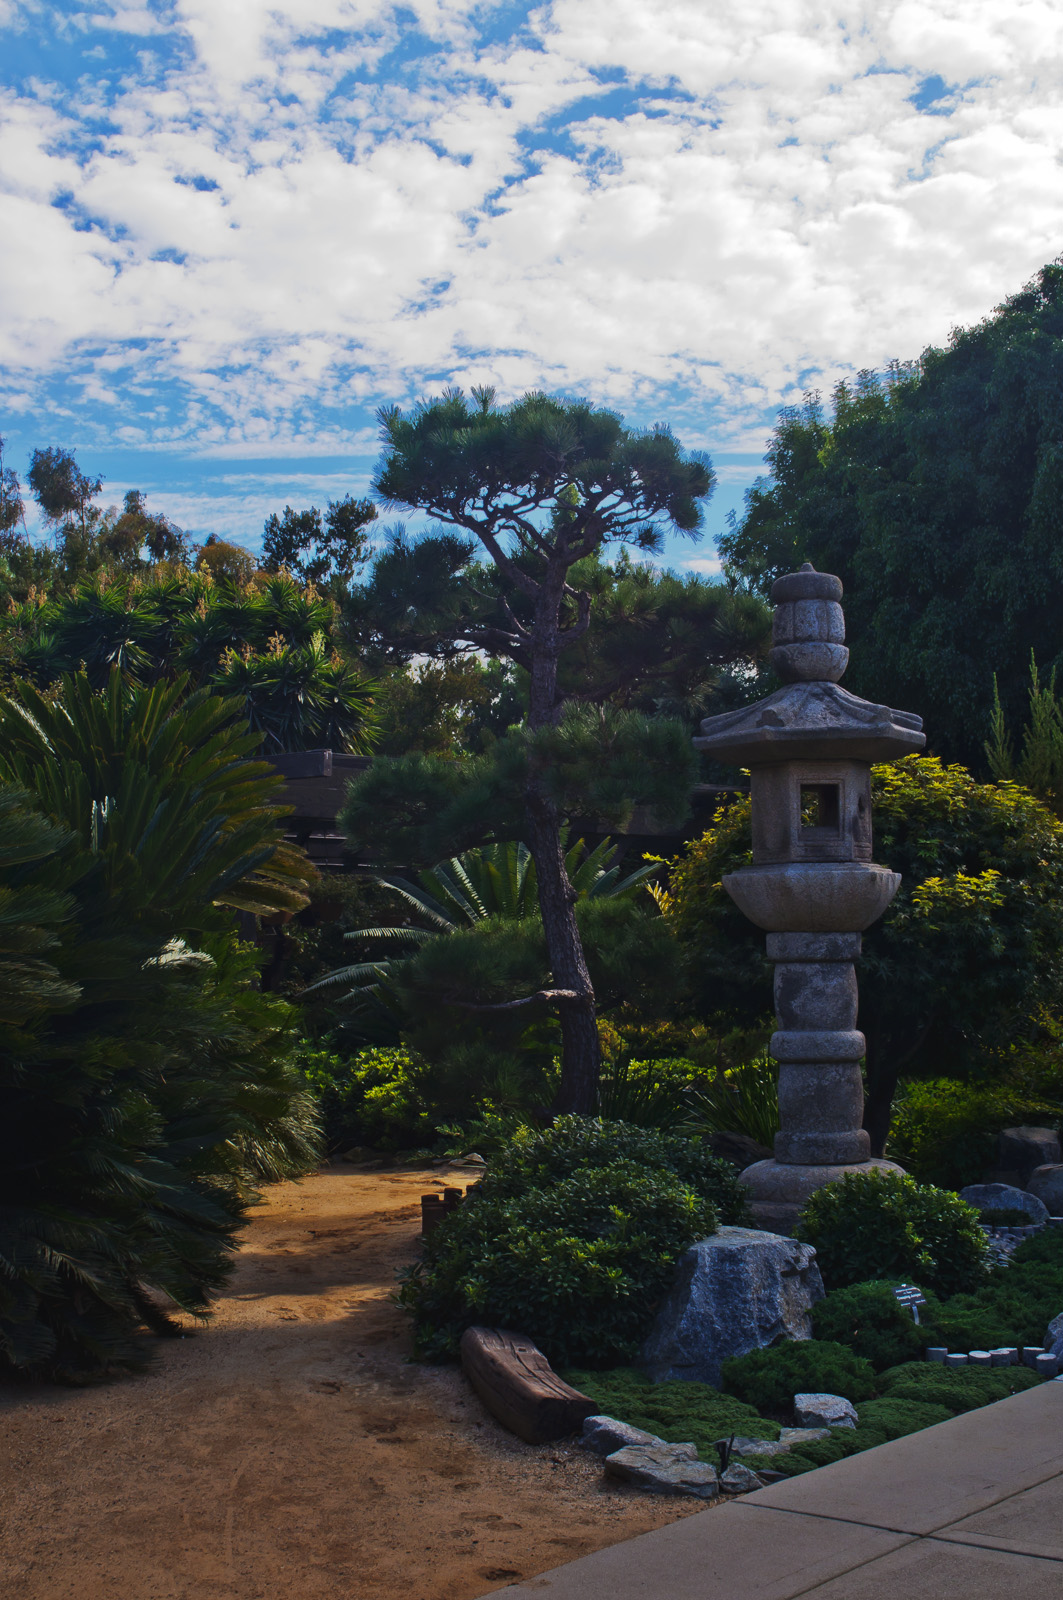 File:South Bay Botanic Garden, Palos Verdes Peninsula (8038134640)